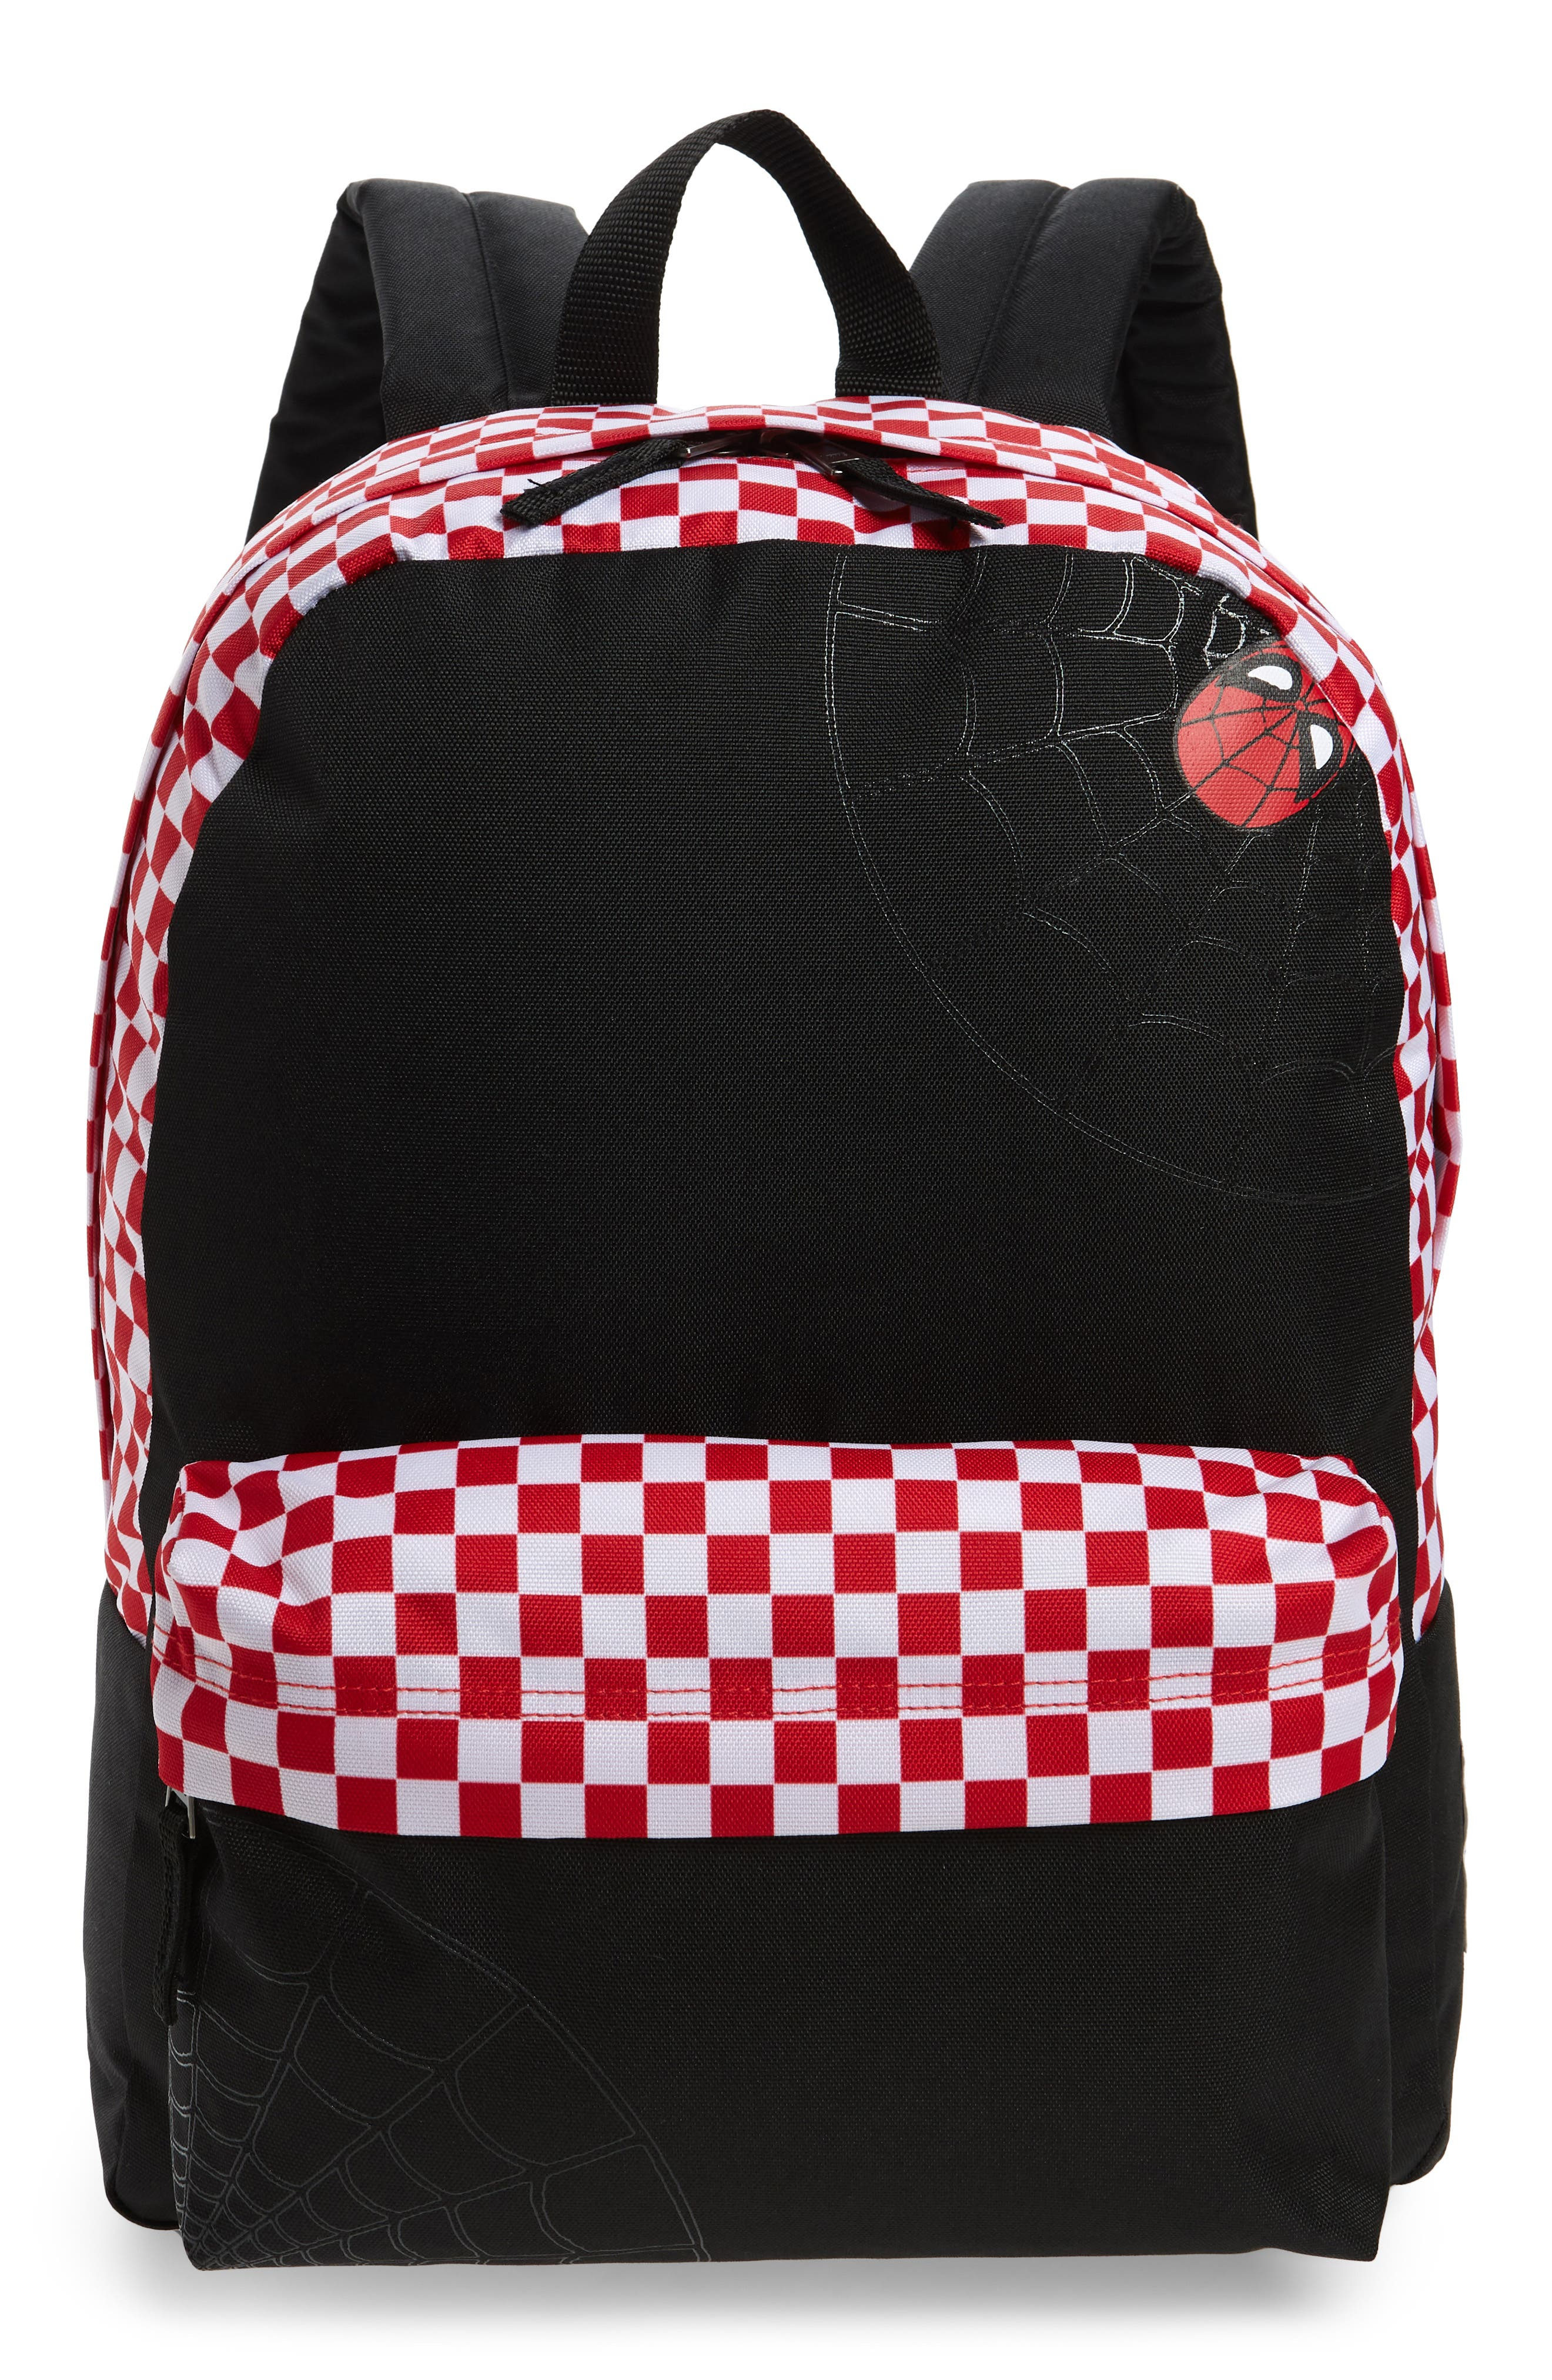 x Marvel<sup>®</sup> Spidey Realm Backpack,                             Main thumbnail 1, color,                             001